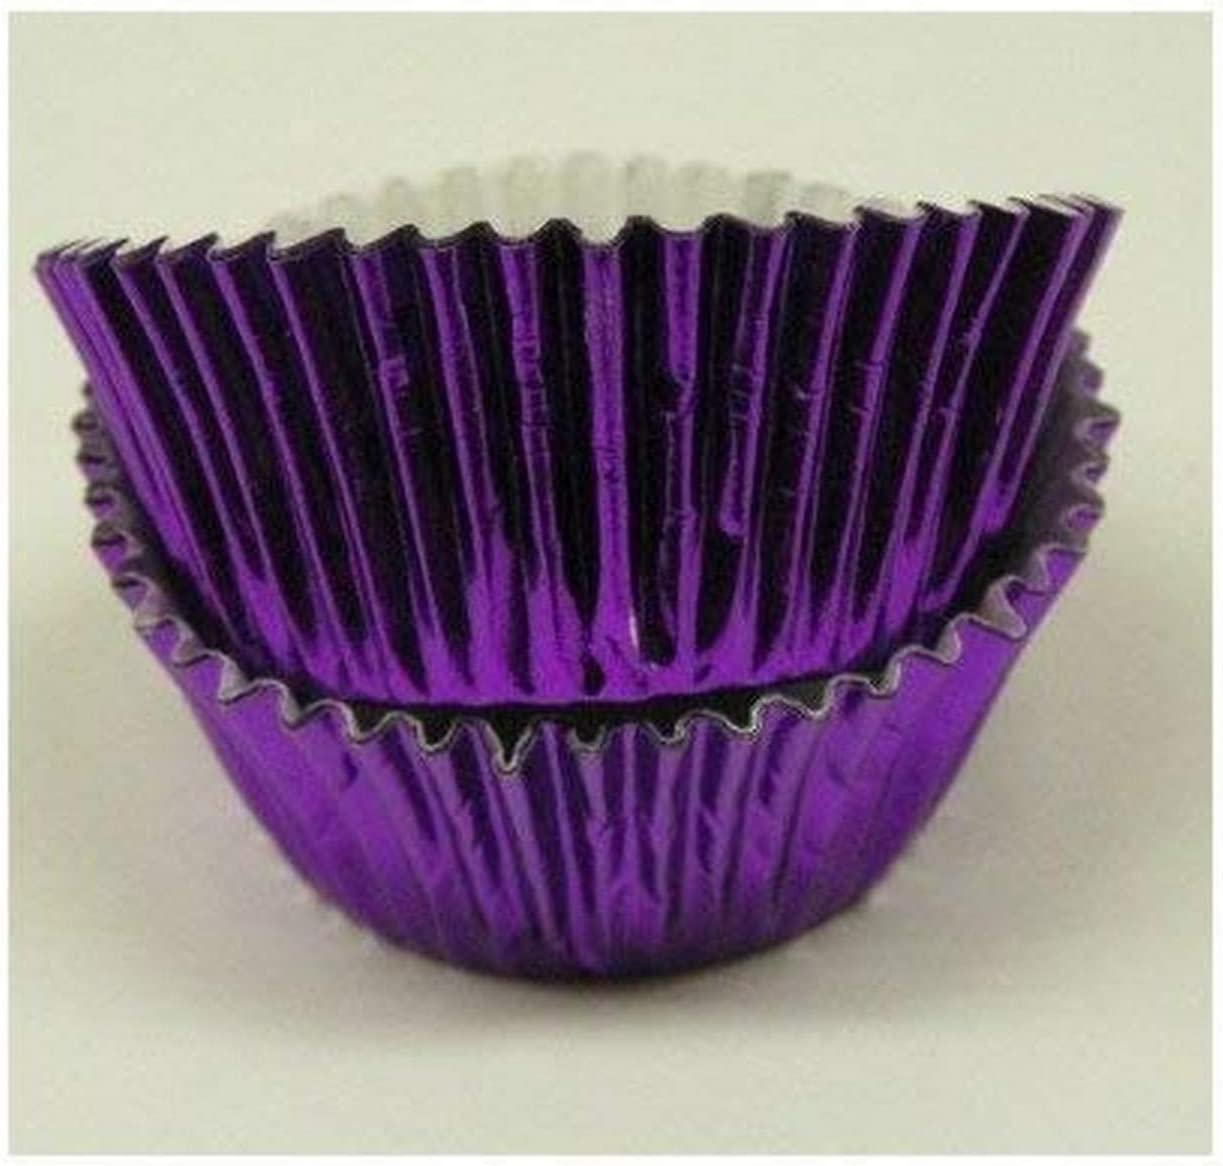 Hot Pink Glassine Cupcake Cases or Baking Cups 50 Pack